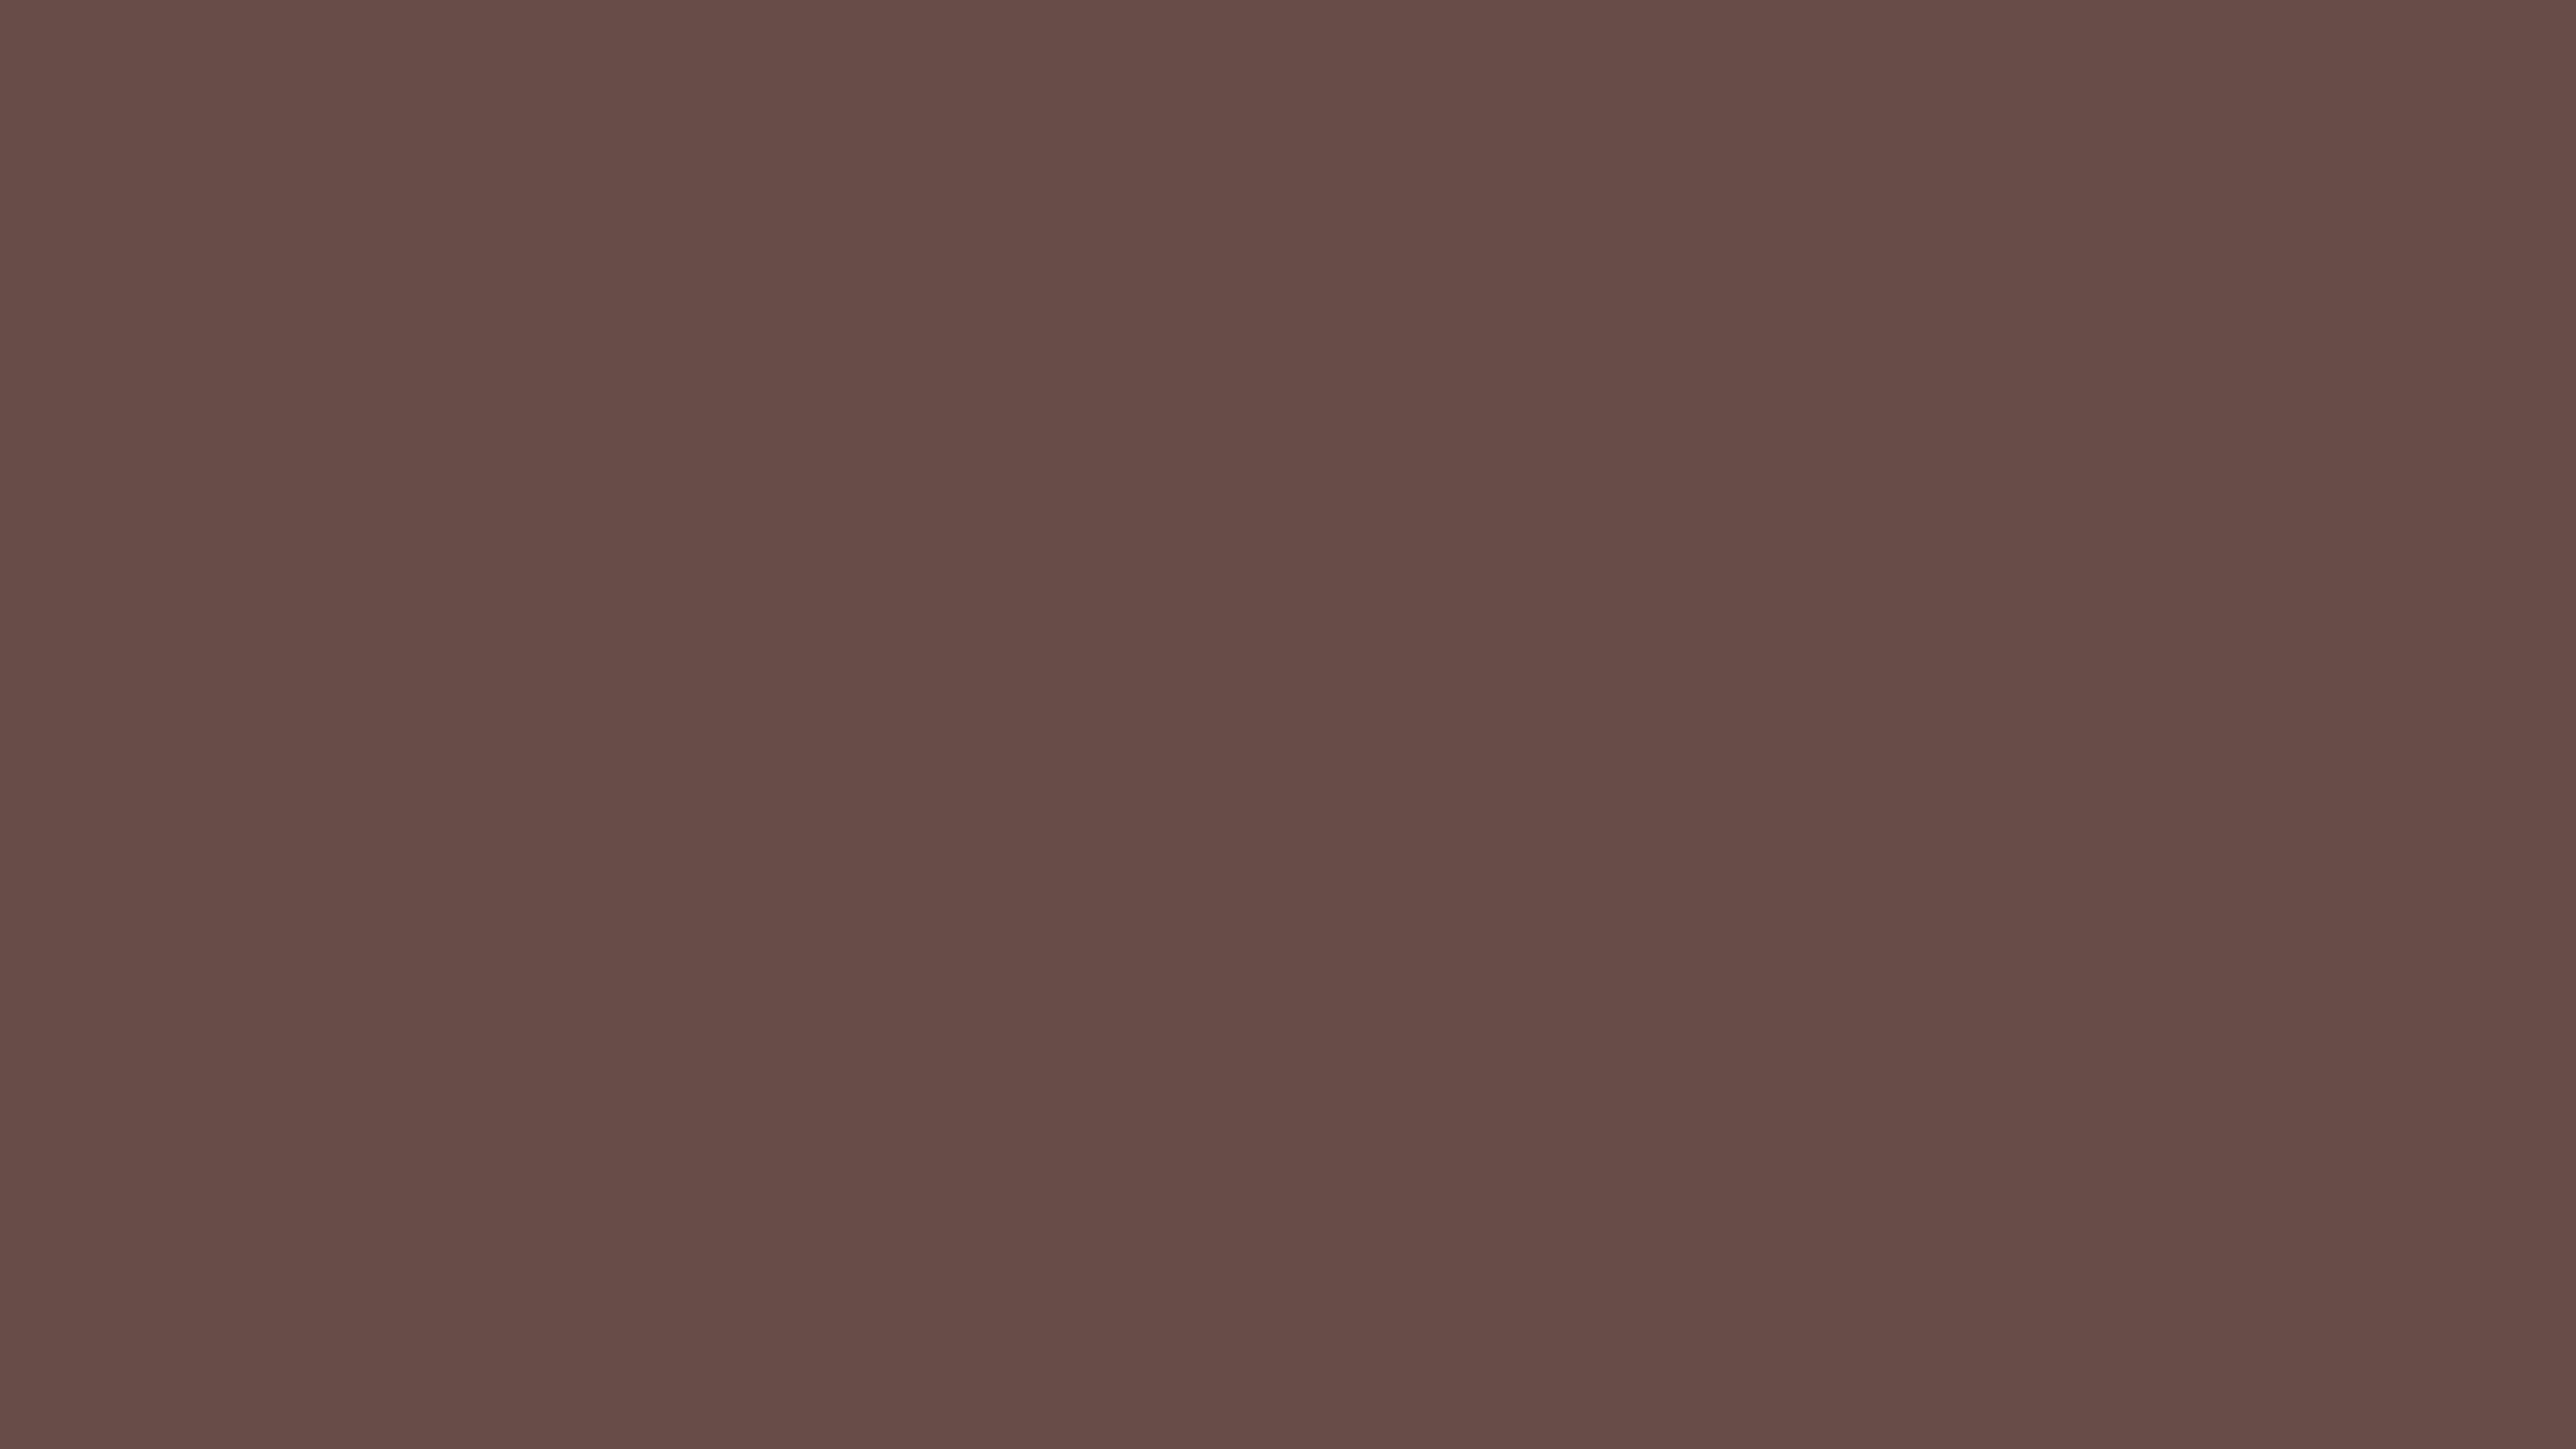 3840x2160 Medium Taupe Solid Color Background